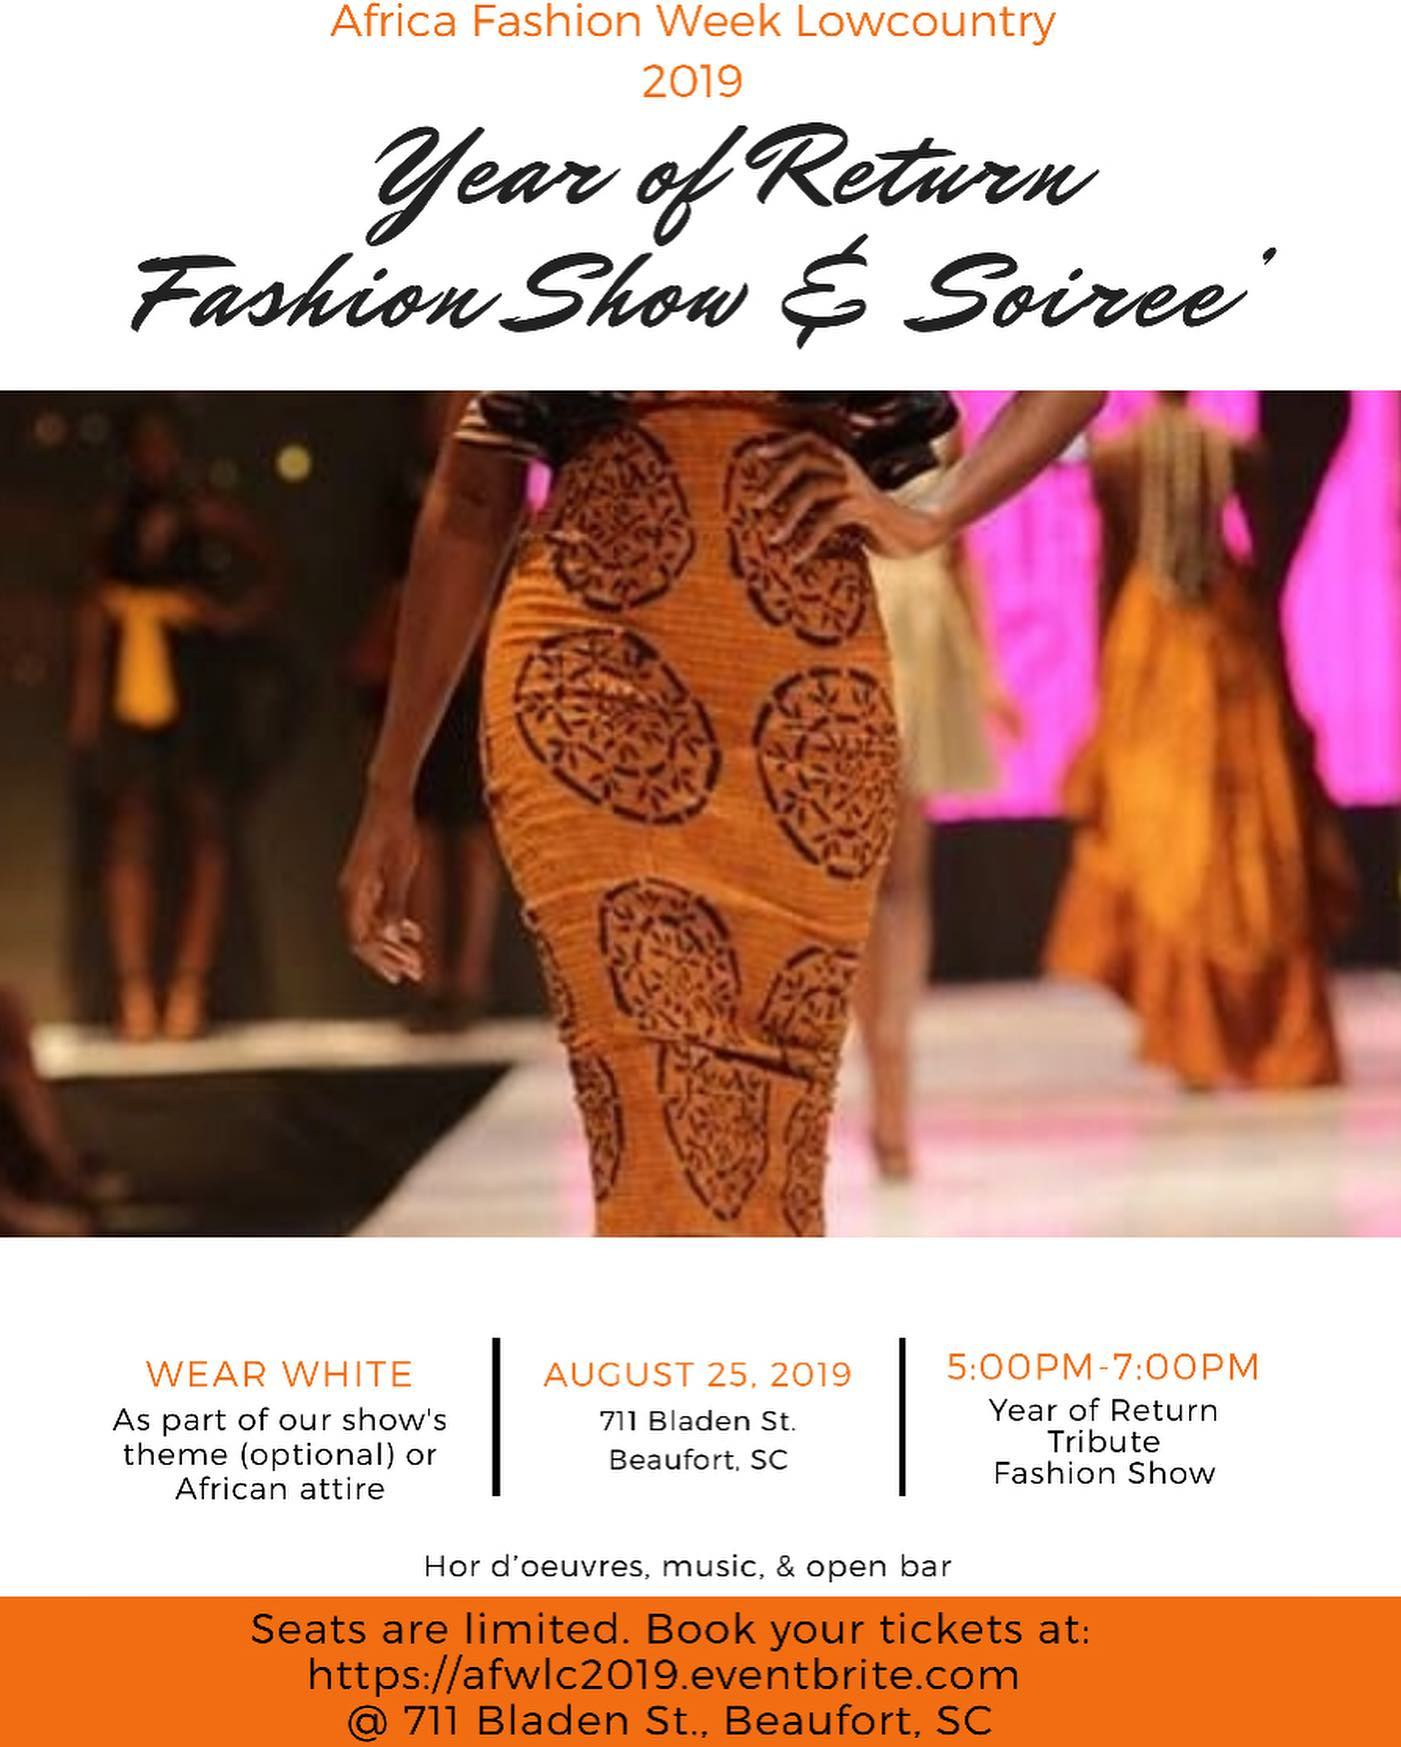 68495910_2470214863031060_7752029645561659392_o Southern Sensibility & Style: Africa Fashion Week Lowcountry 2019